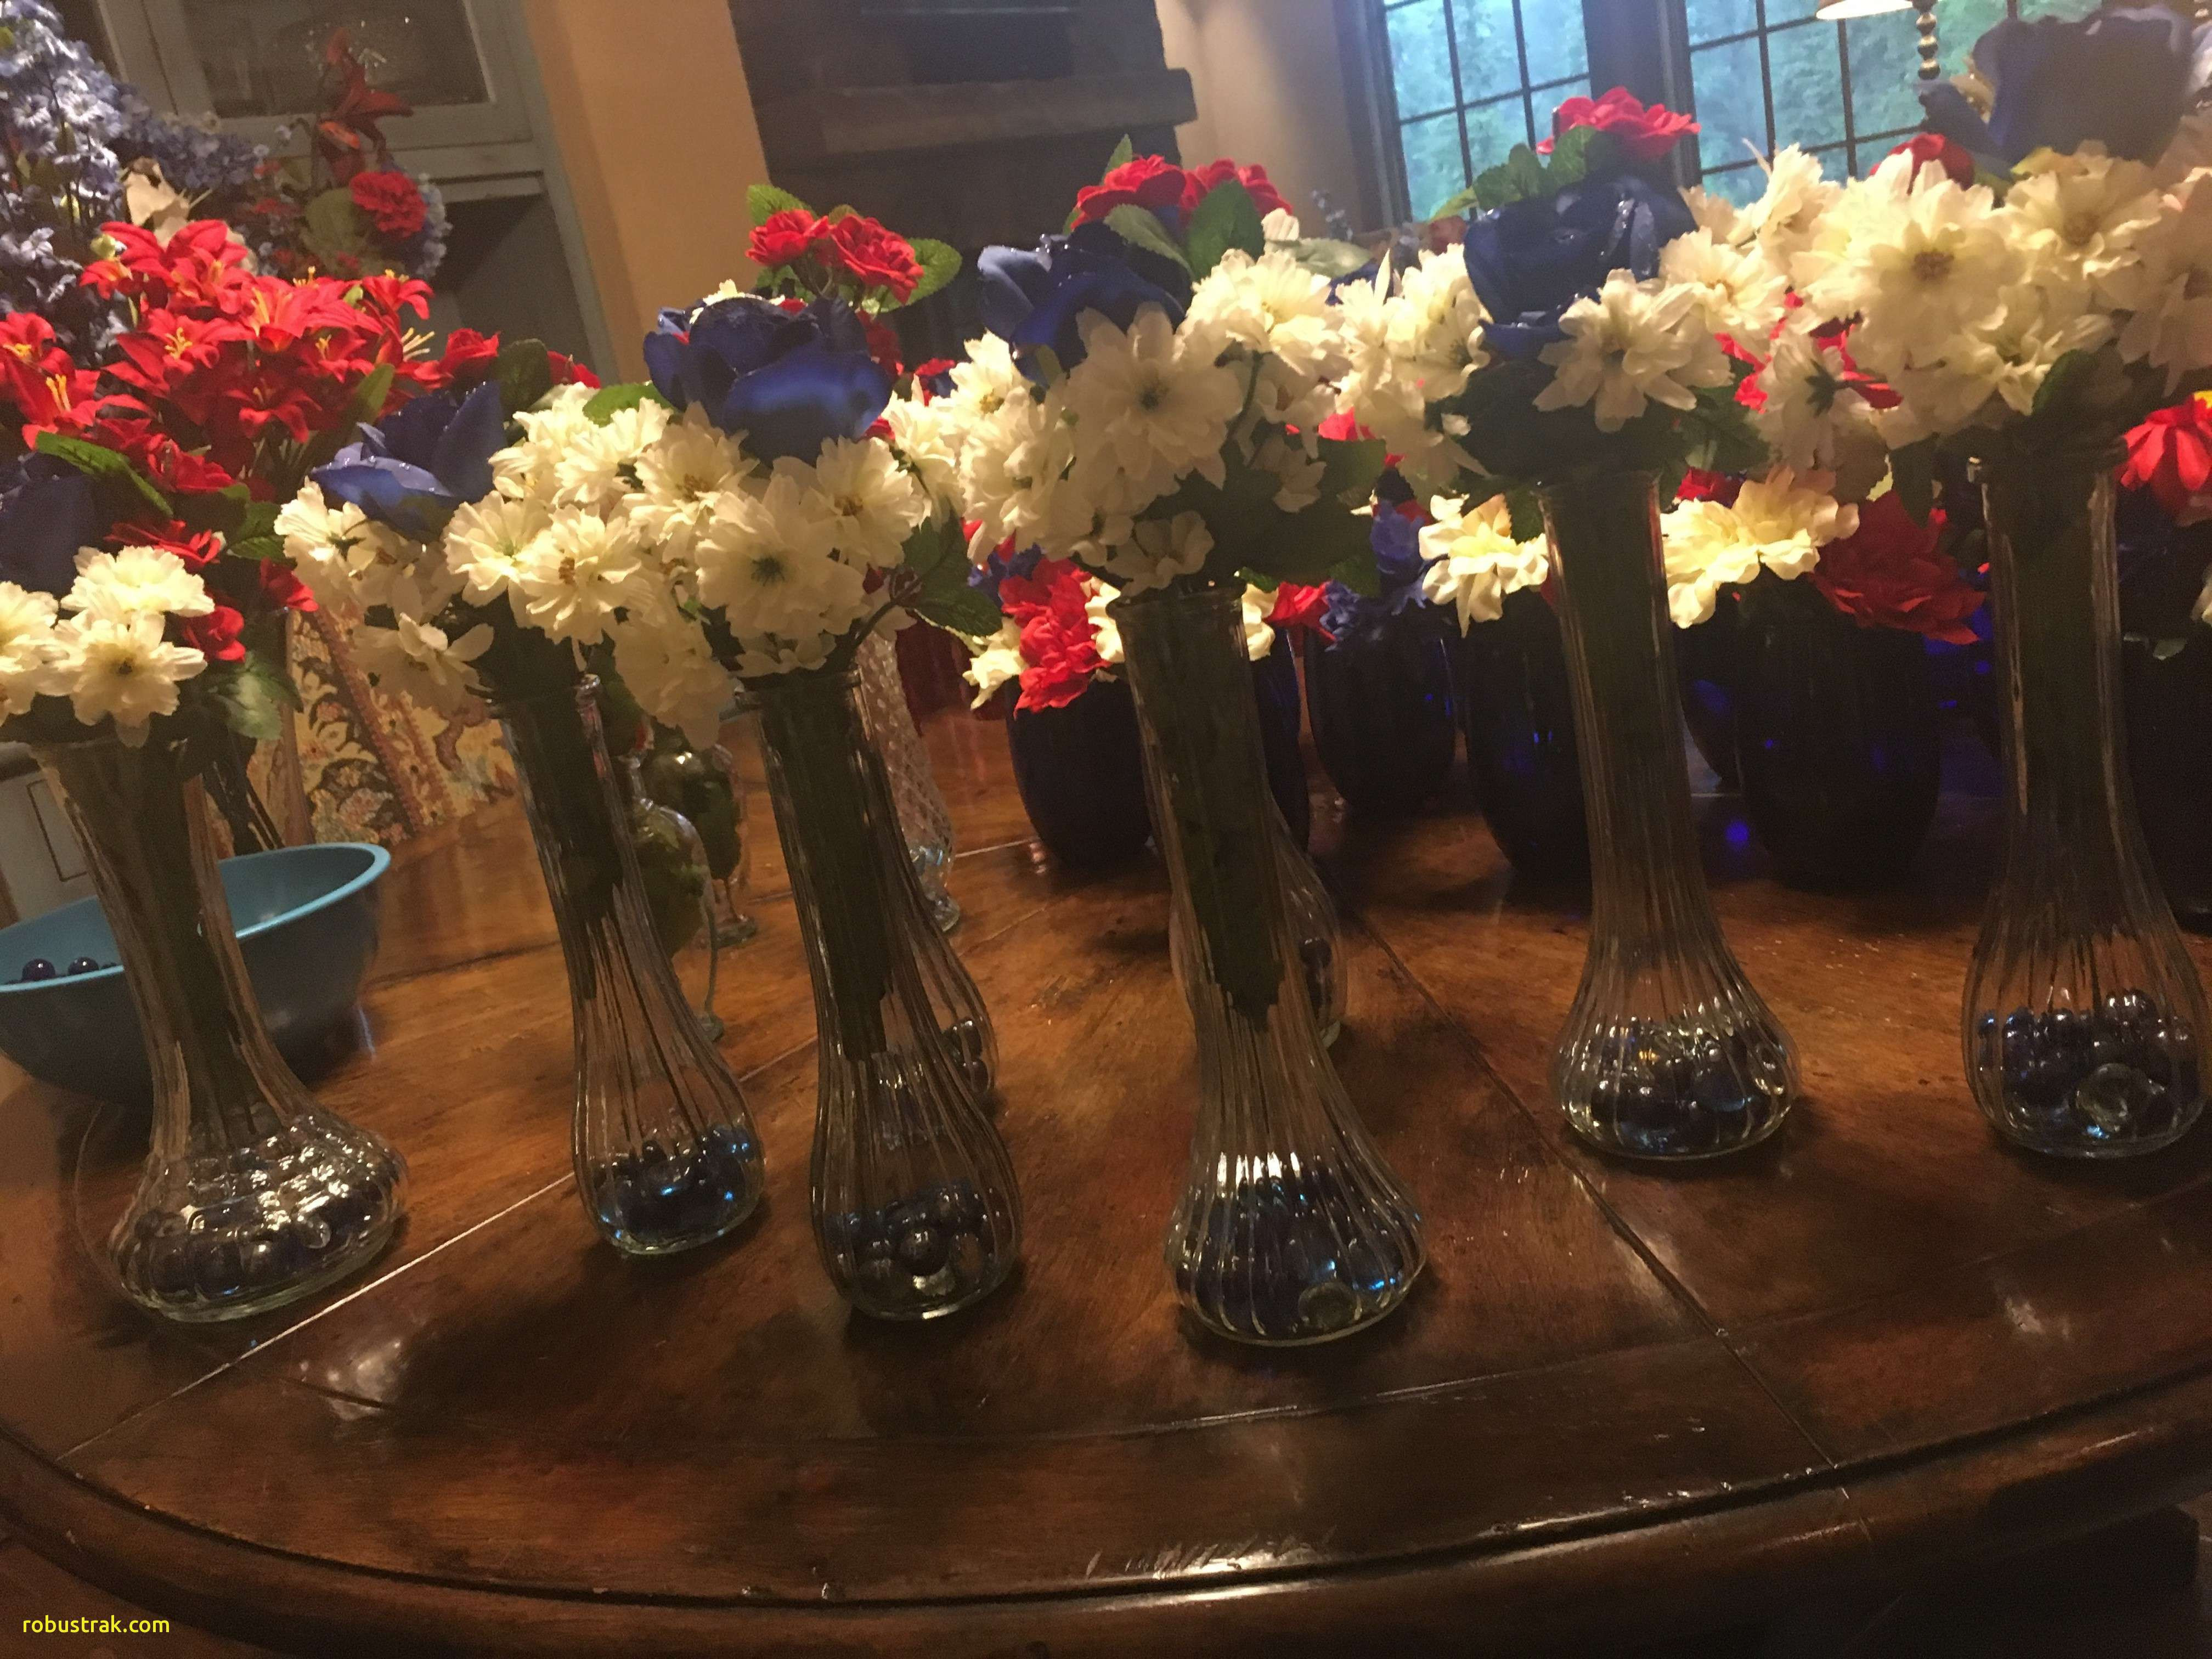 36 inch glass floor vase of inspirational wedding decorations glass bowls home design ideas pertaining to dollar tree vases centerpieces lovely dollar tree wedding decorations awesome h vases dollar vase i 0d